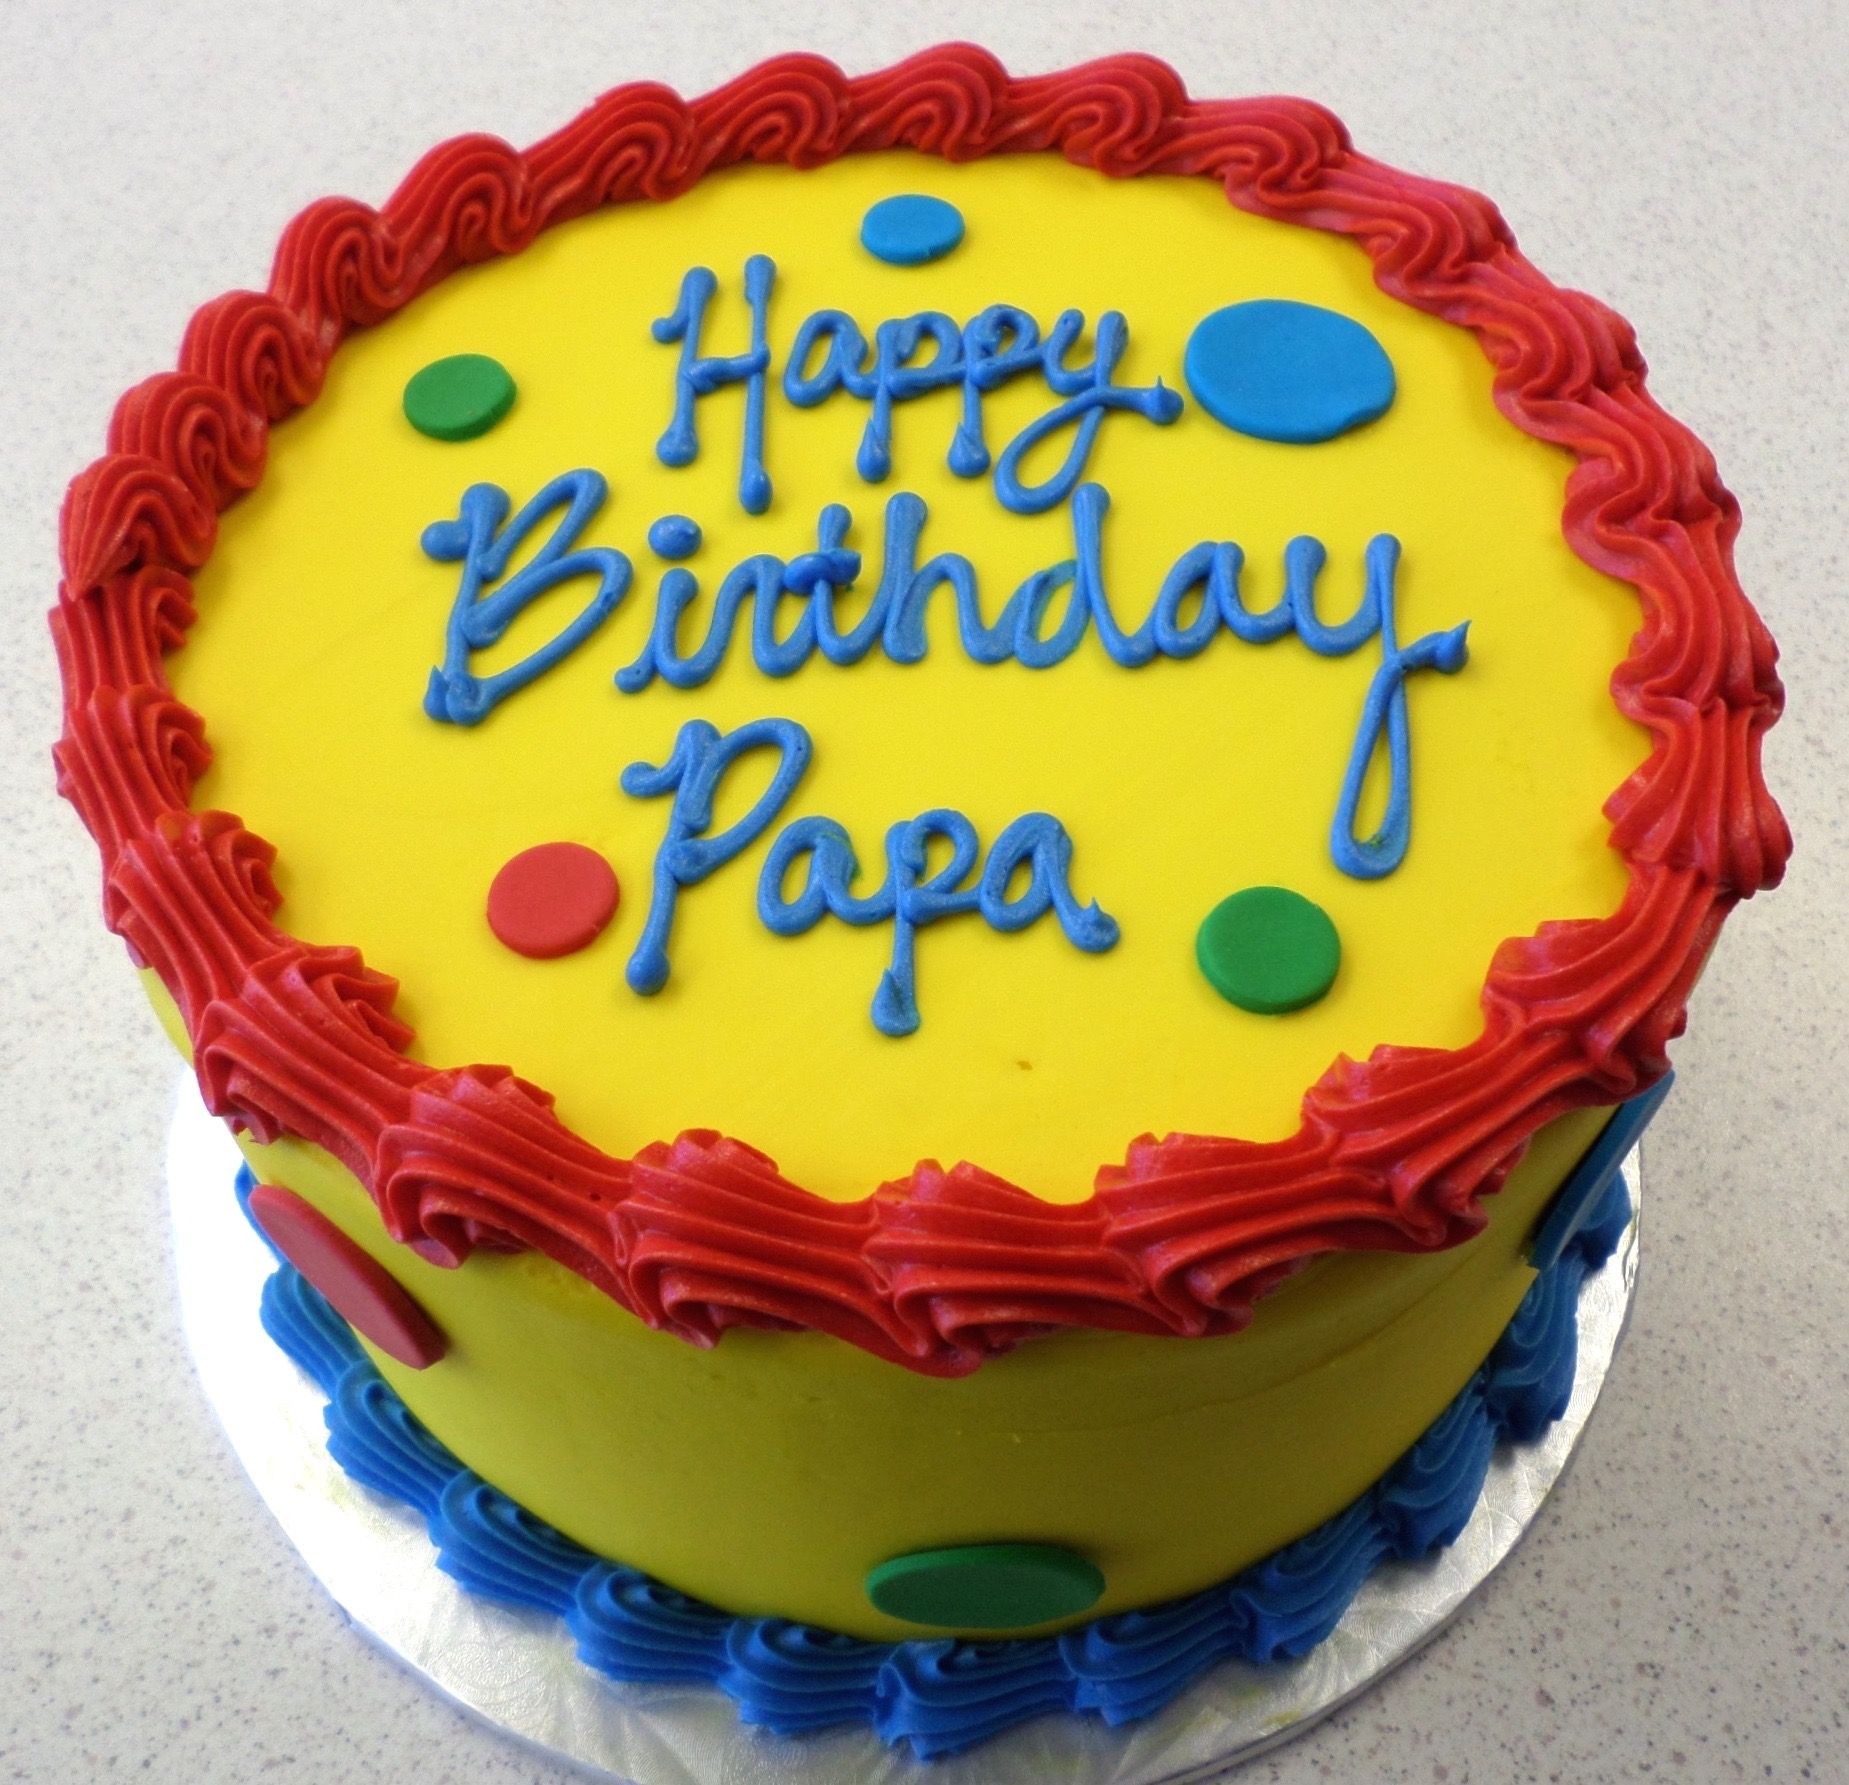 Happy Birthday Papa Cake